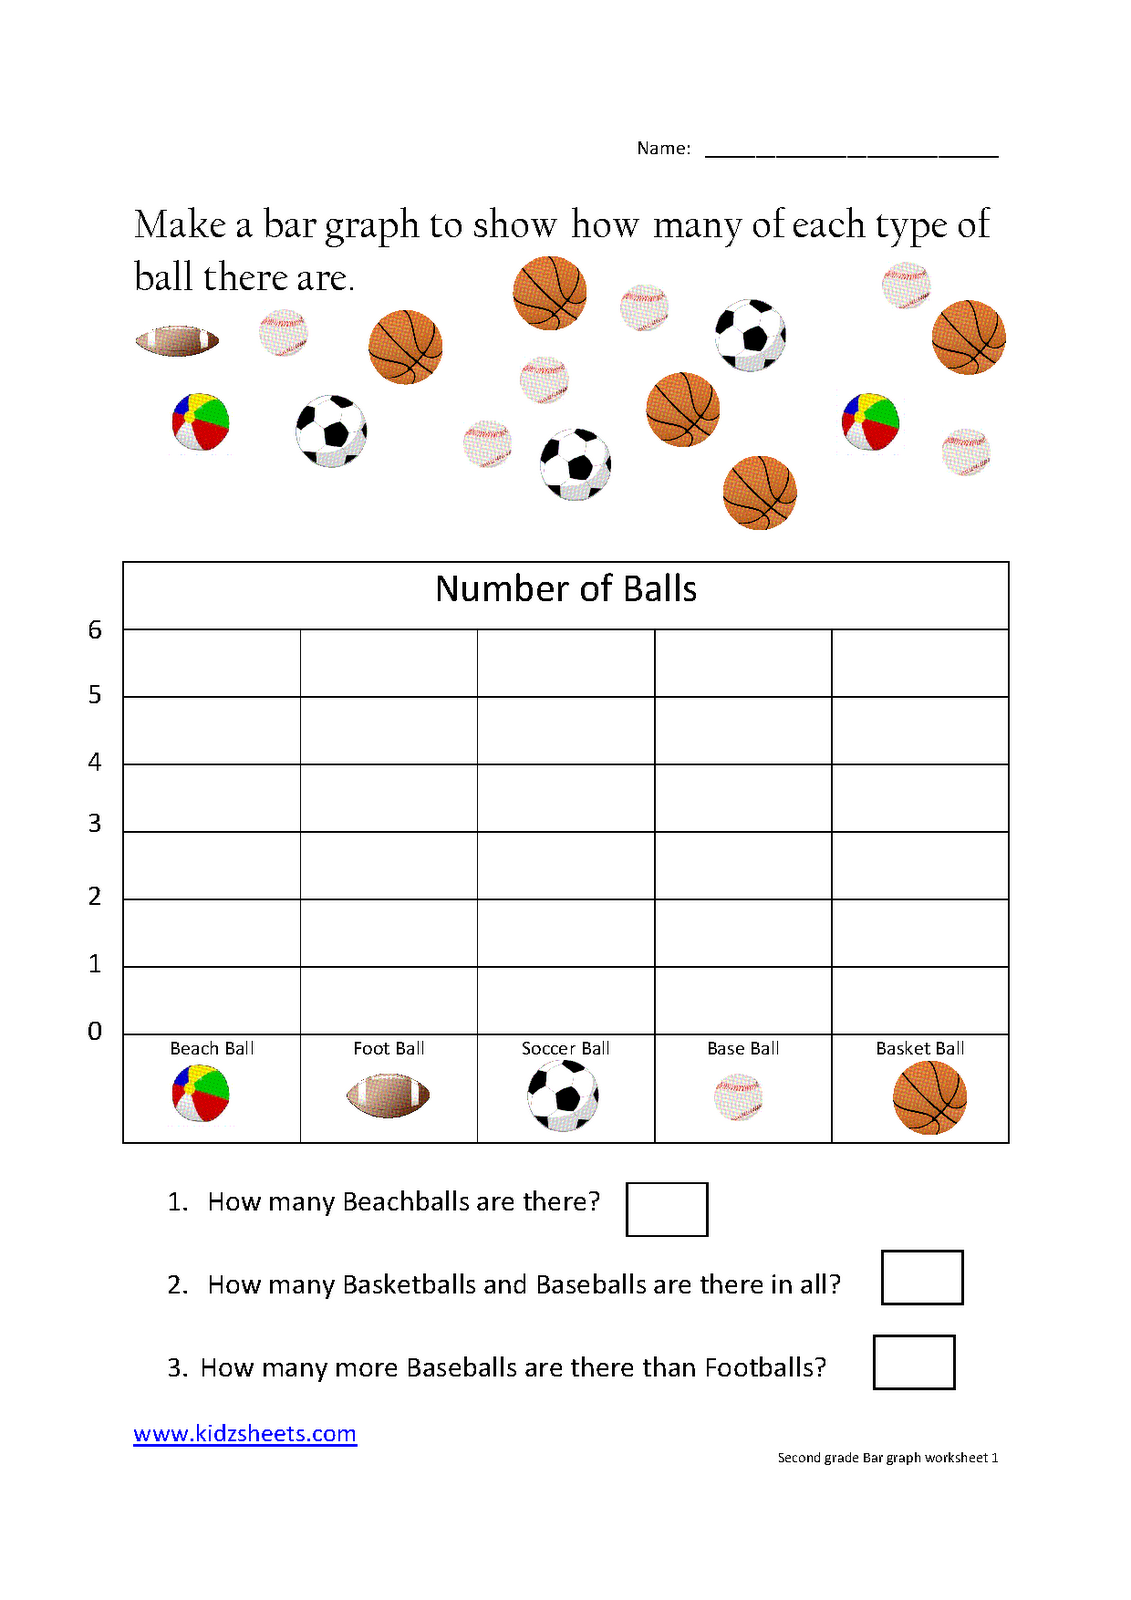 Free Worksheet Graphs Worksheets kidz worksheets second grade bar graph worksheet1 graph